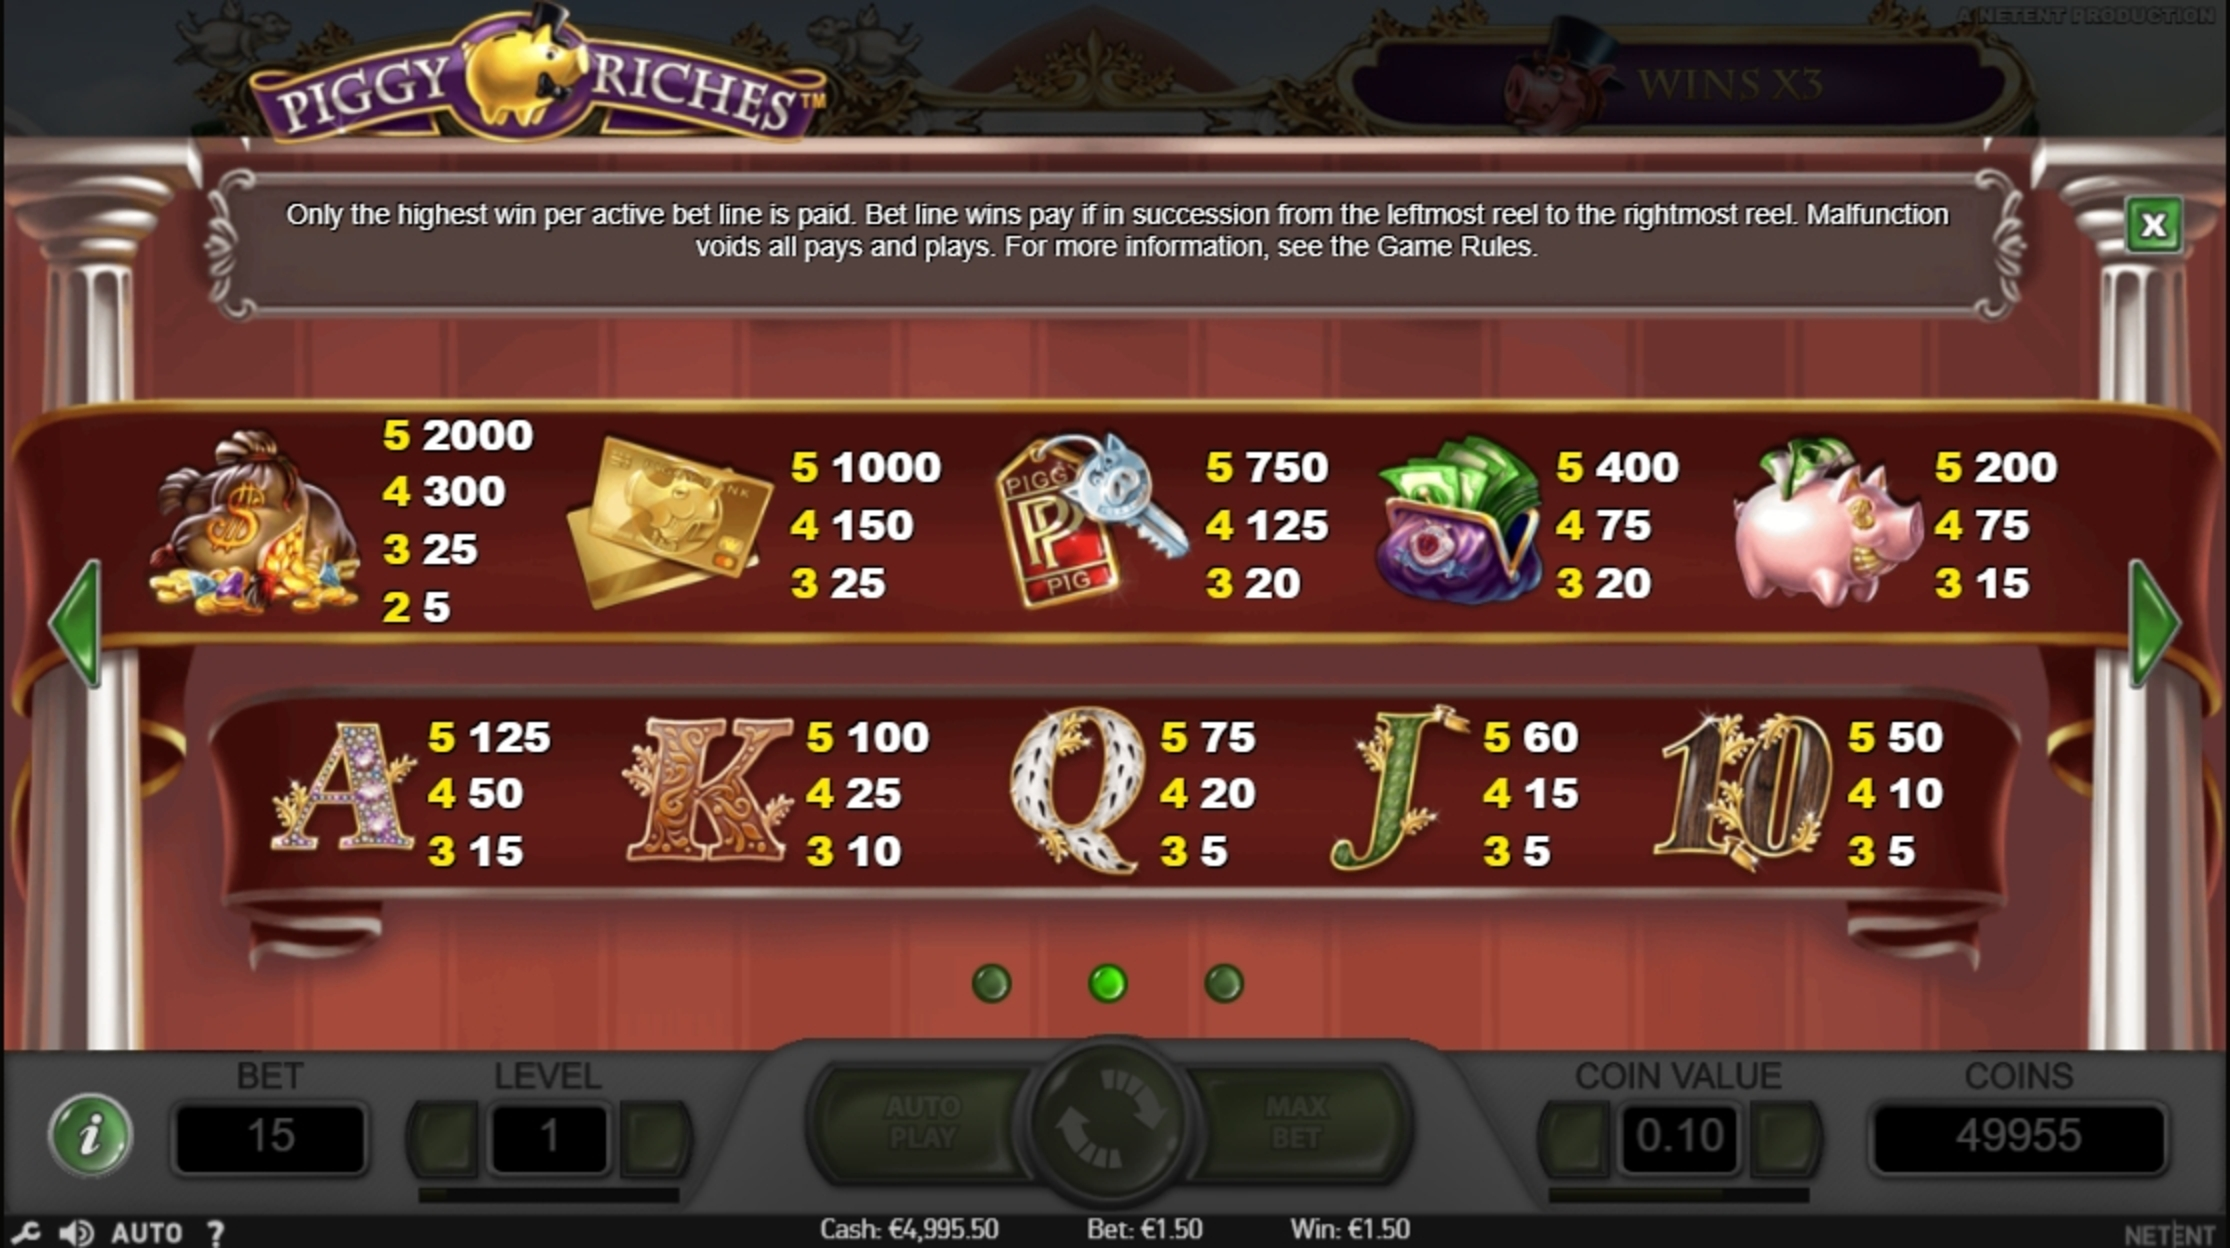 Info of Piggy Riches Slot Game by NetEnt